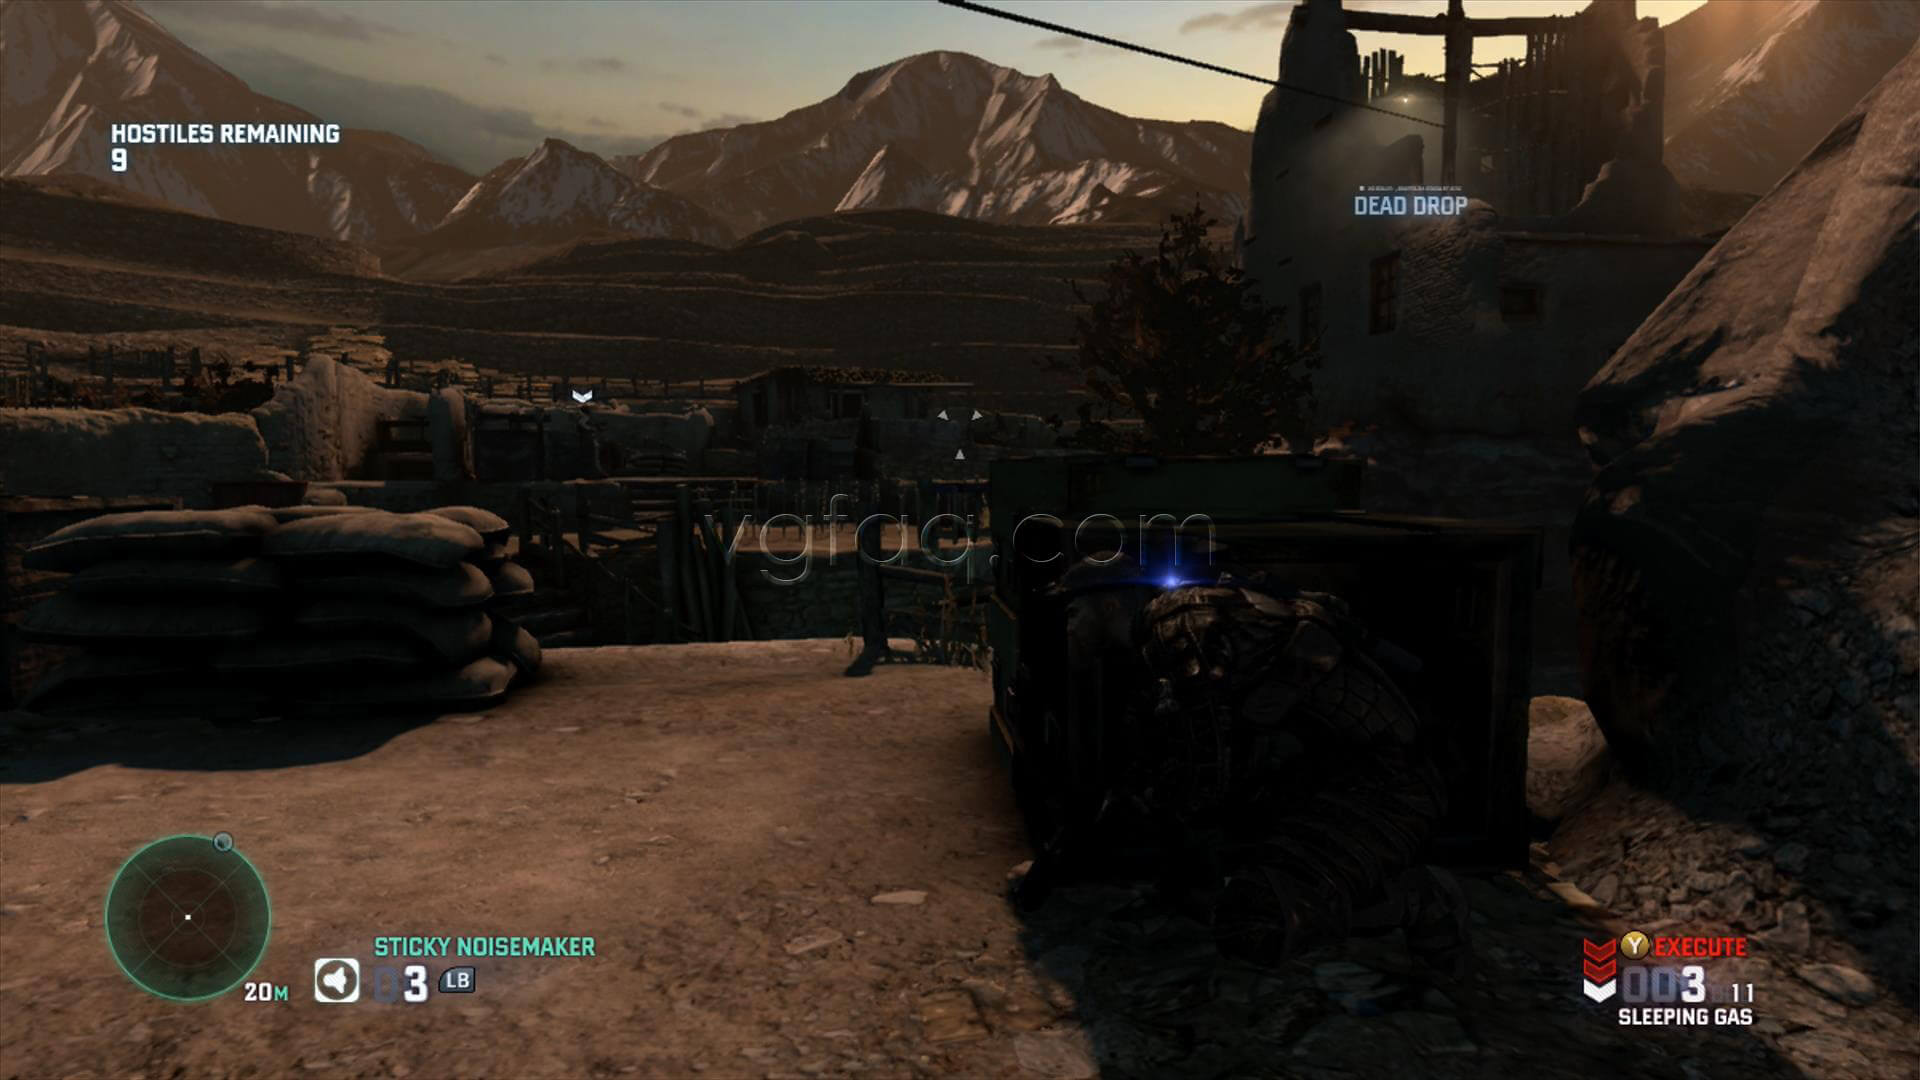 Splinter Cell Blacklist Opium Farm Dead Drop Location